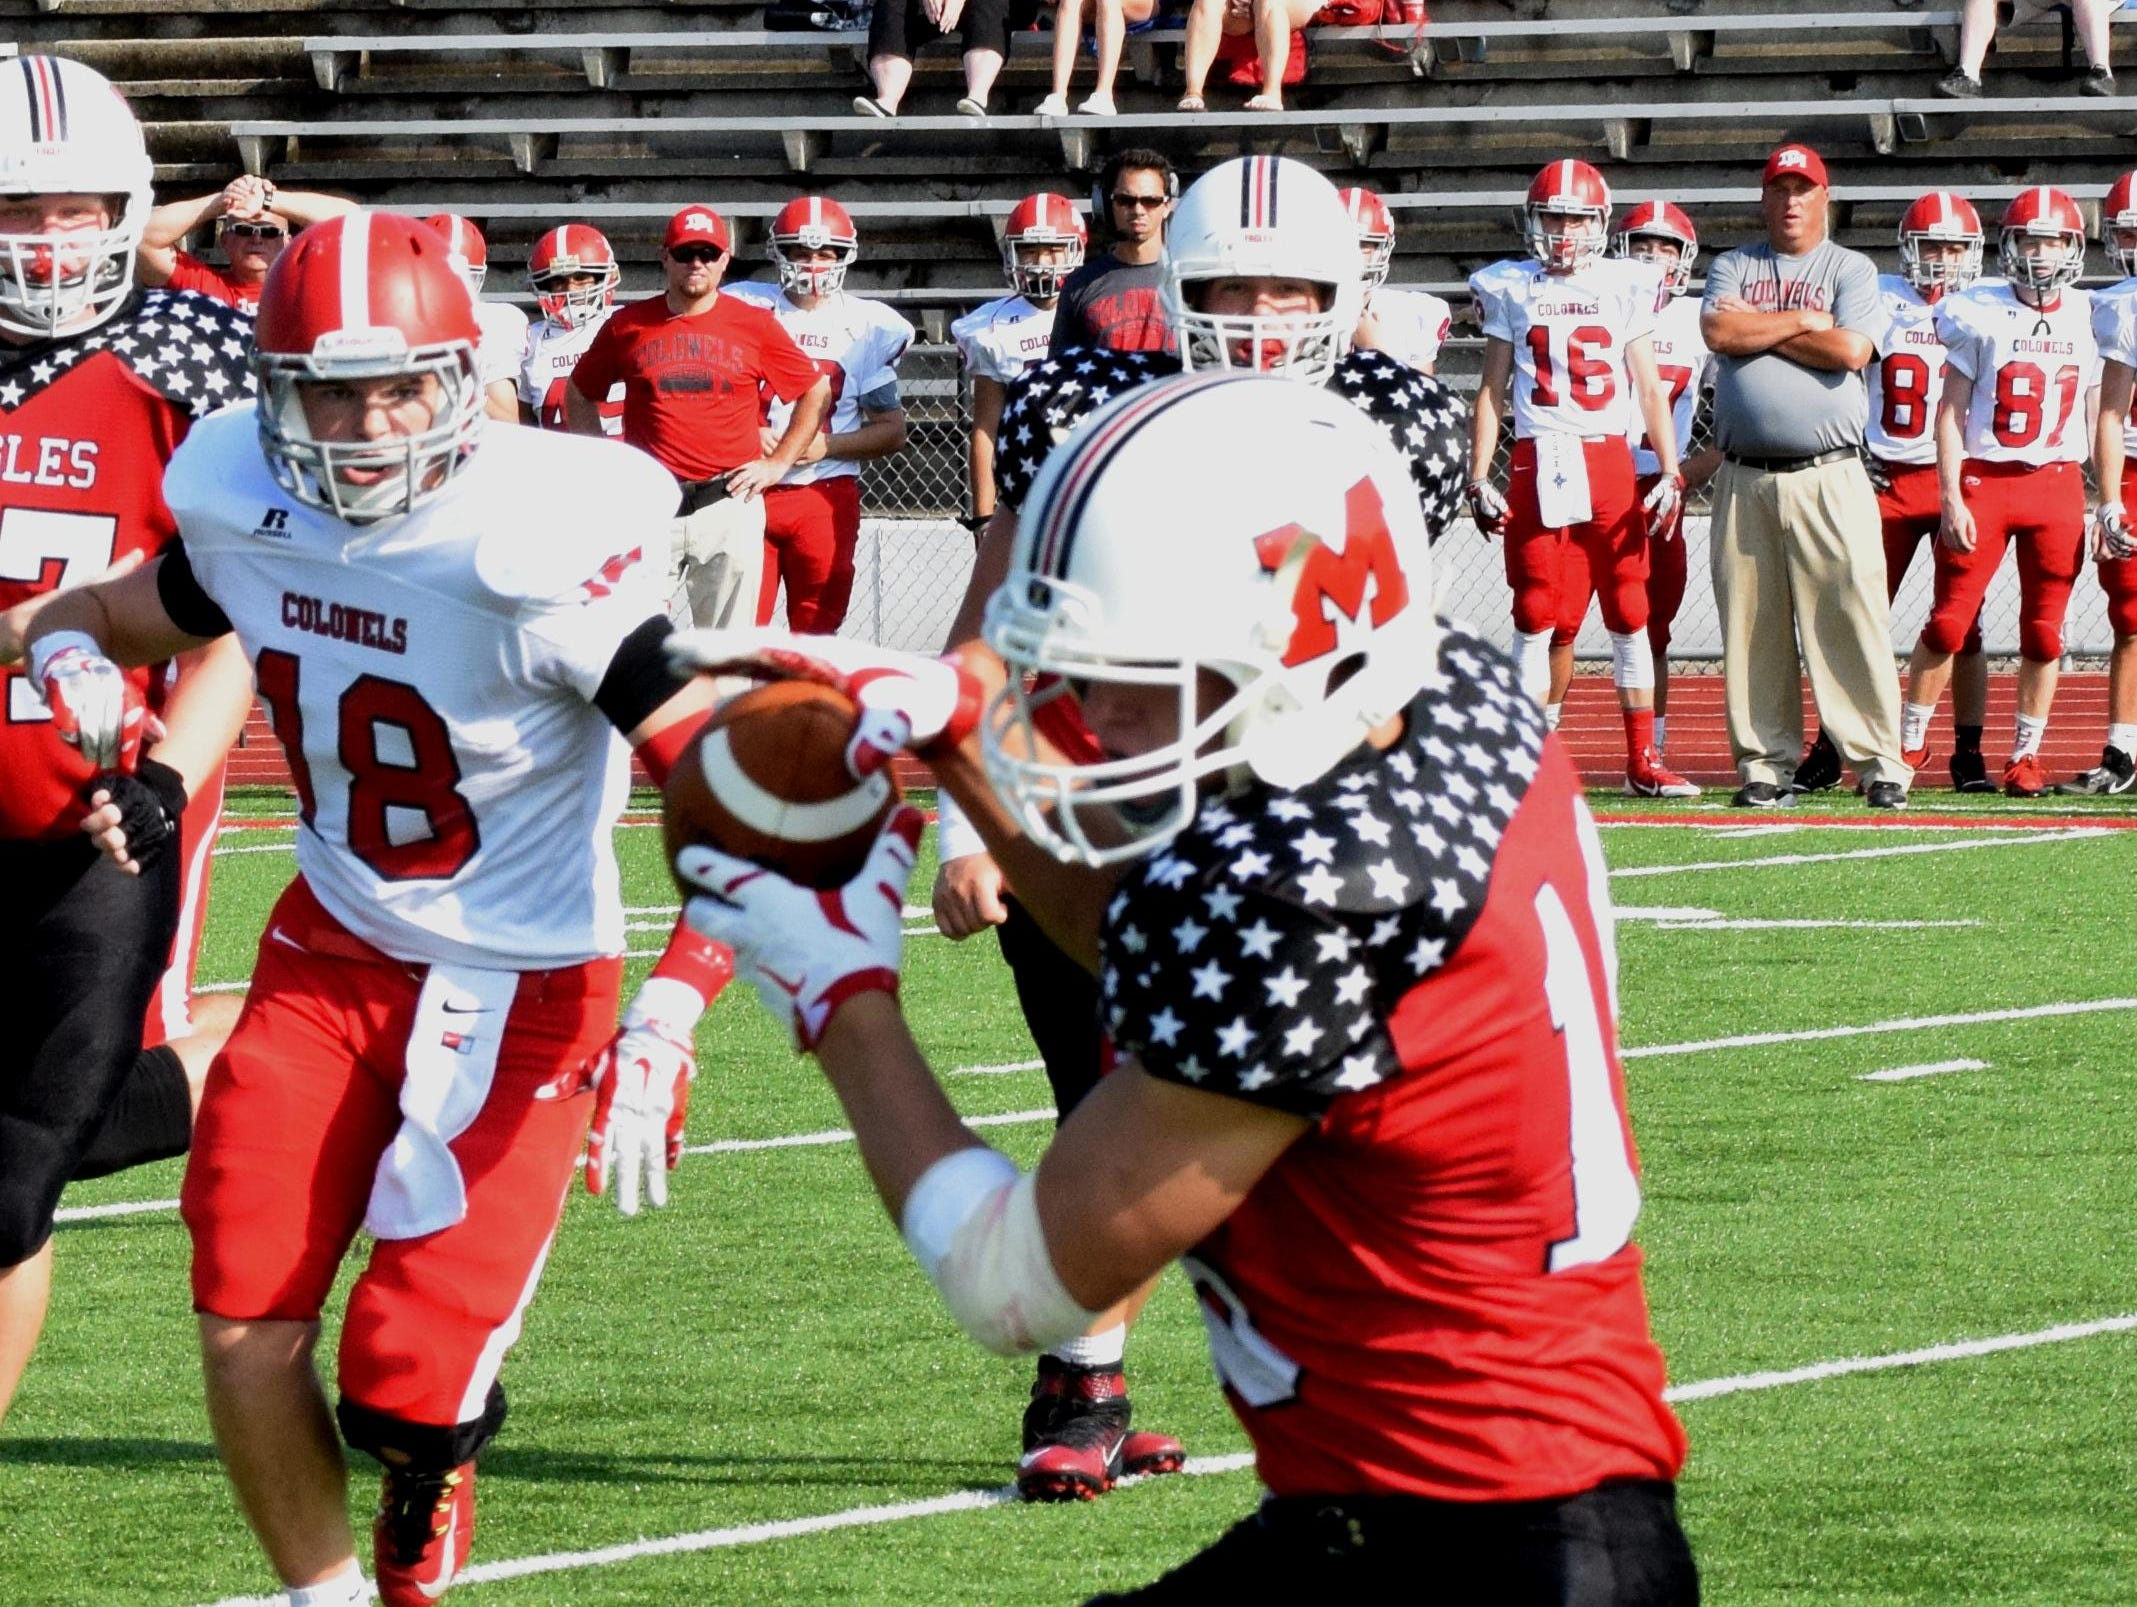 Milford's Ben Greenwell pulls in a pass against Dixie Heights.